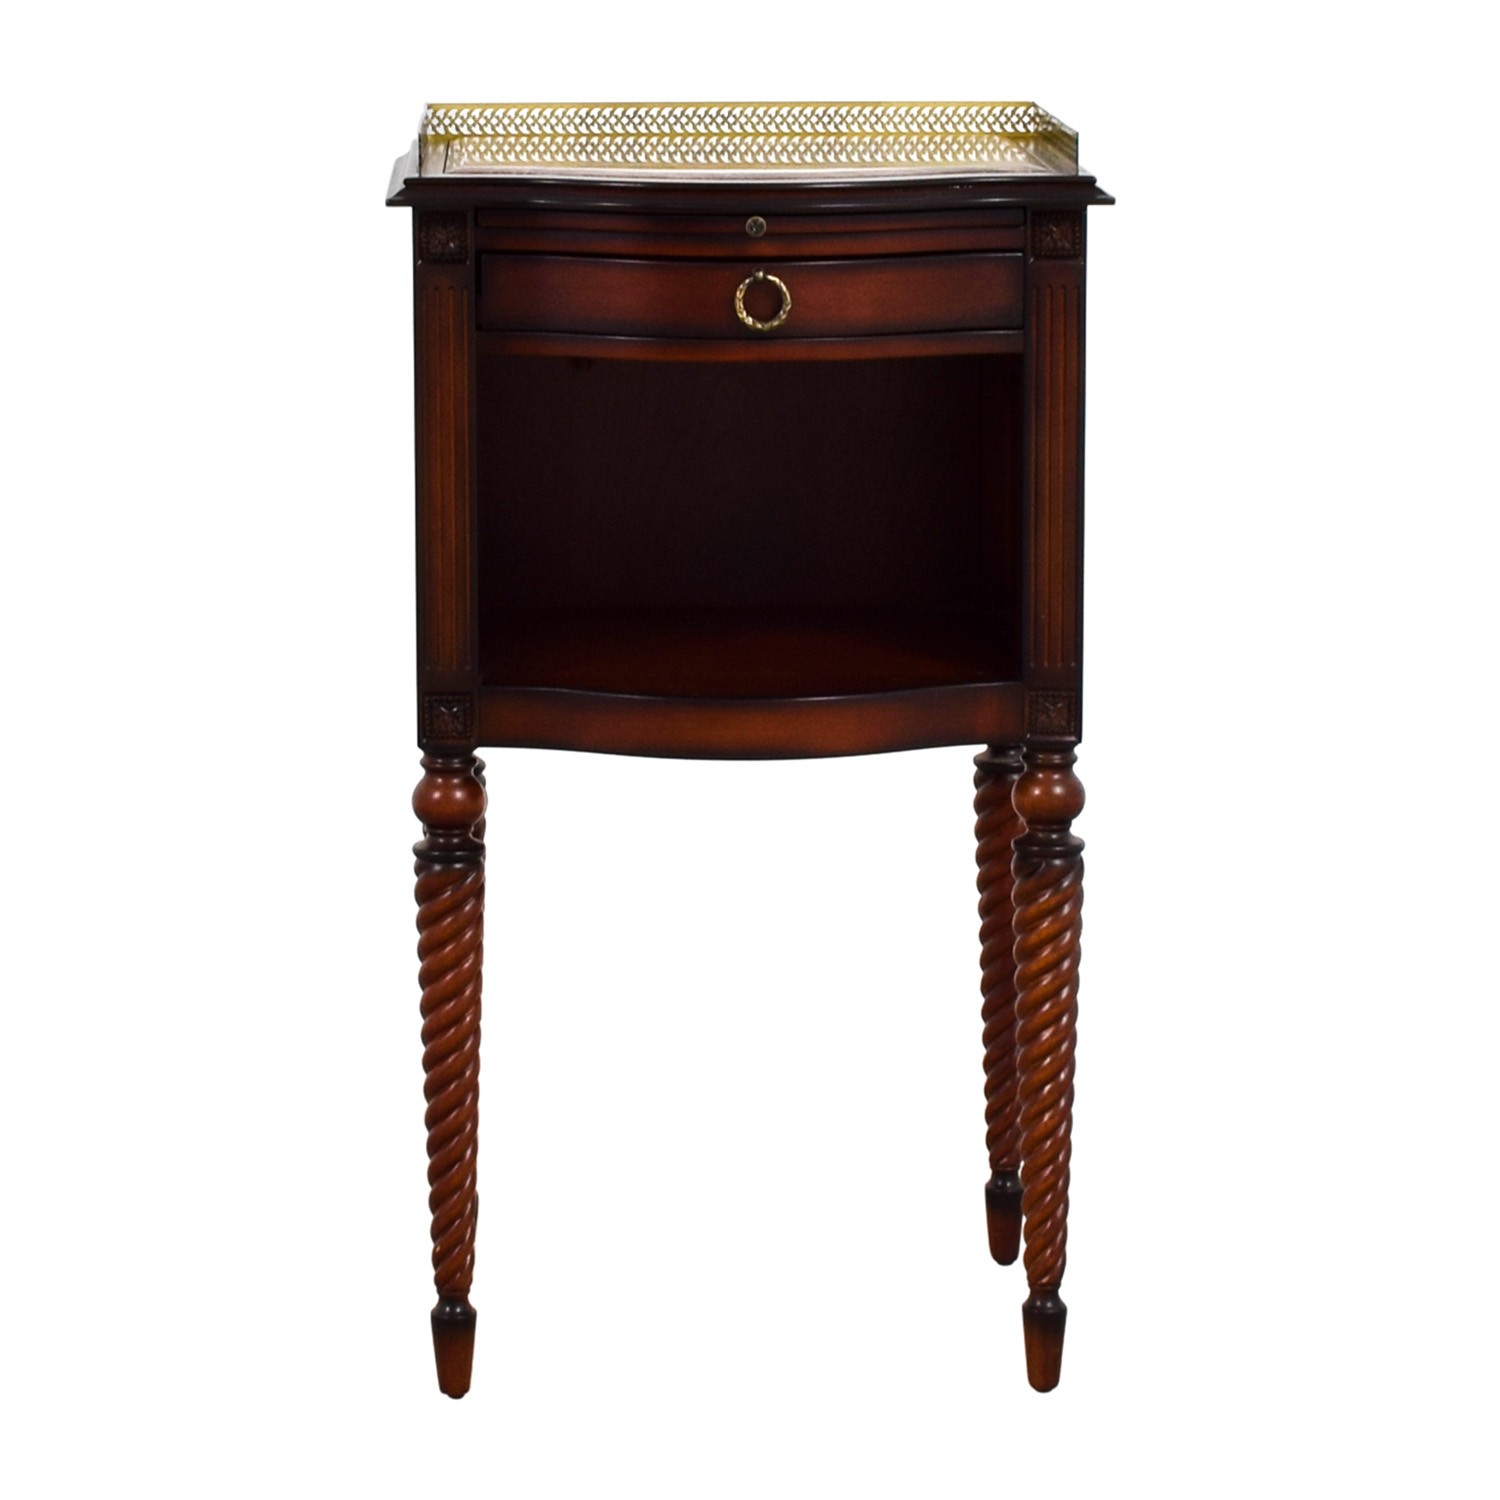 Bombay Bombay Marble Top With Gold Trim Wood Accent Table nyc